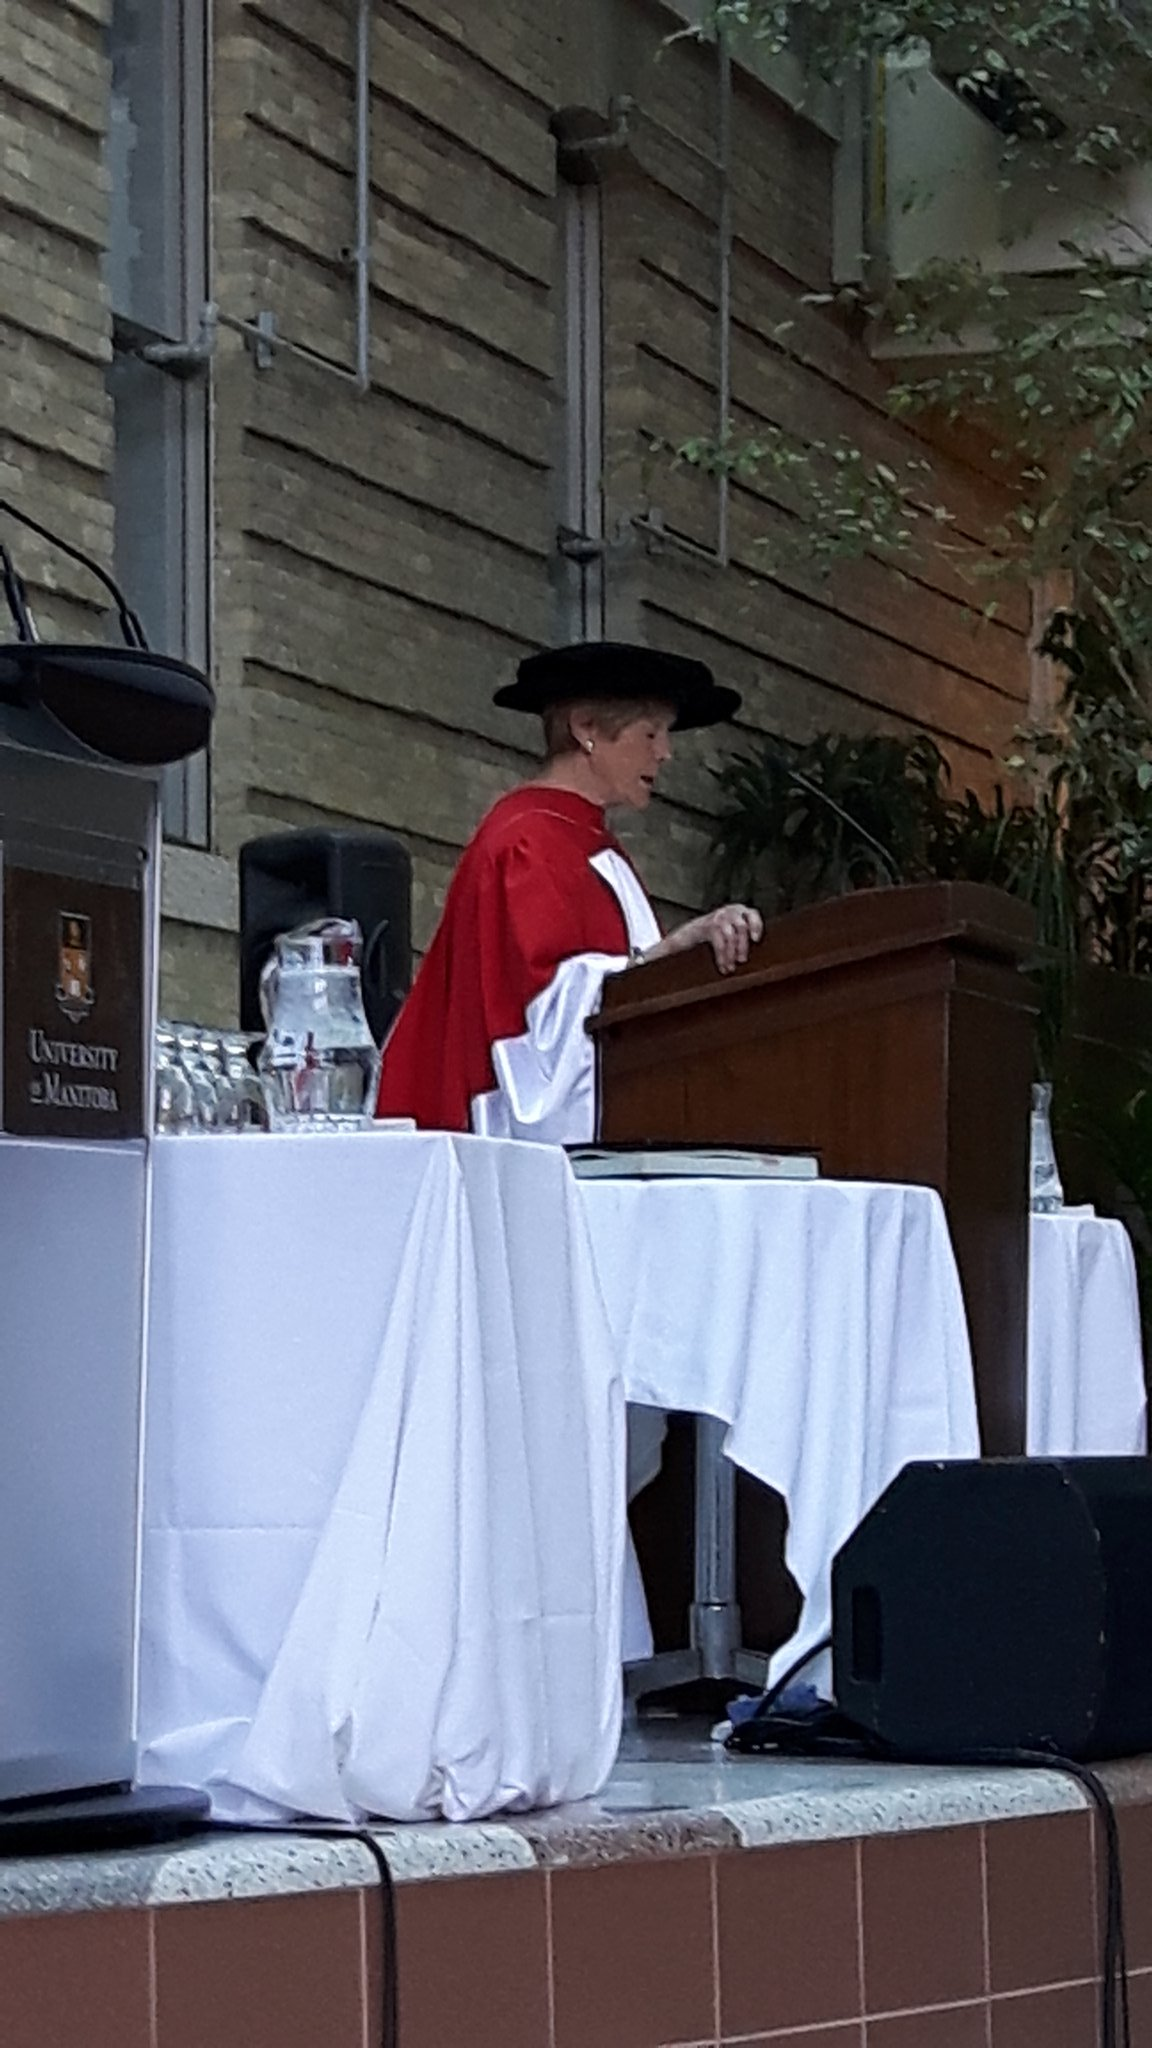 A great privilege to hear from Her Excellency Sharon Johnston at the @UM_RadyFHS convocation today. @umanitoba #umanitoba2017 https://t.co/rVCz2rEHsT